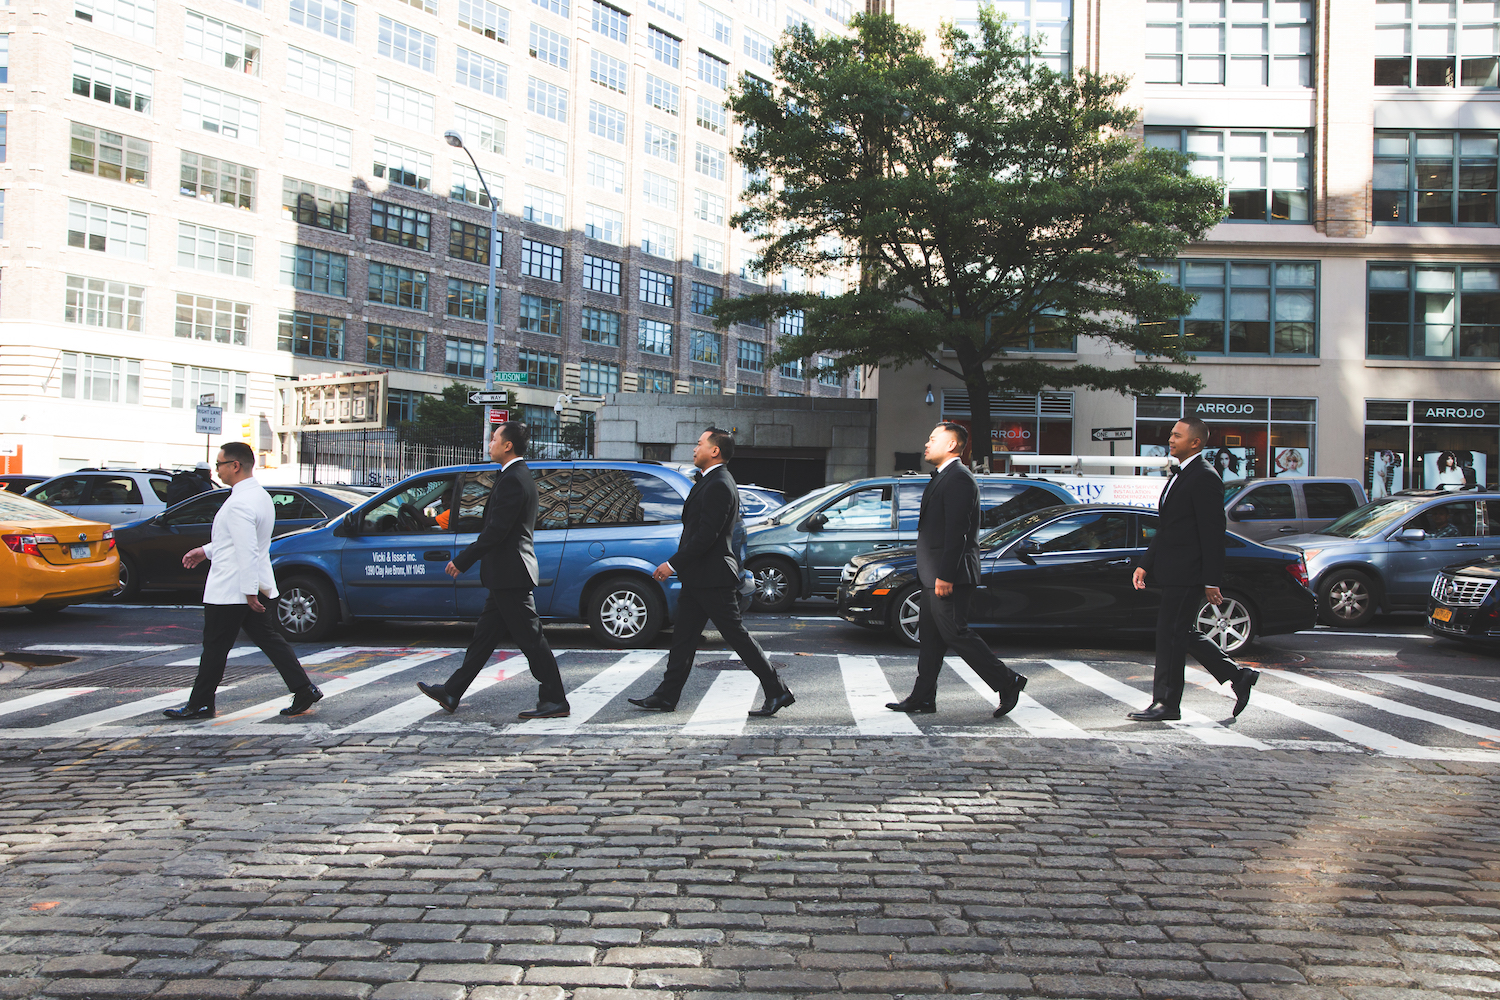 jason-groomsmen-walking-in-line-city-street-nyc-wedding-photography